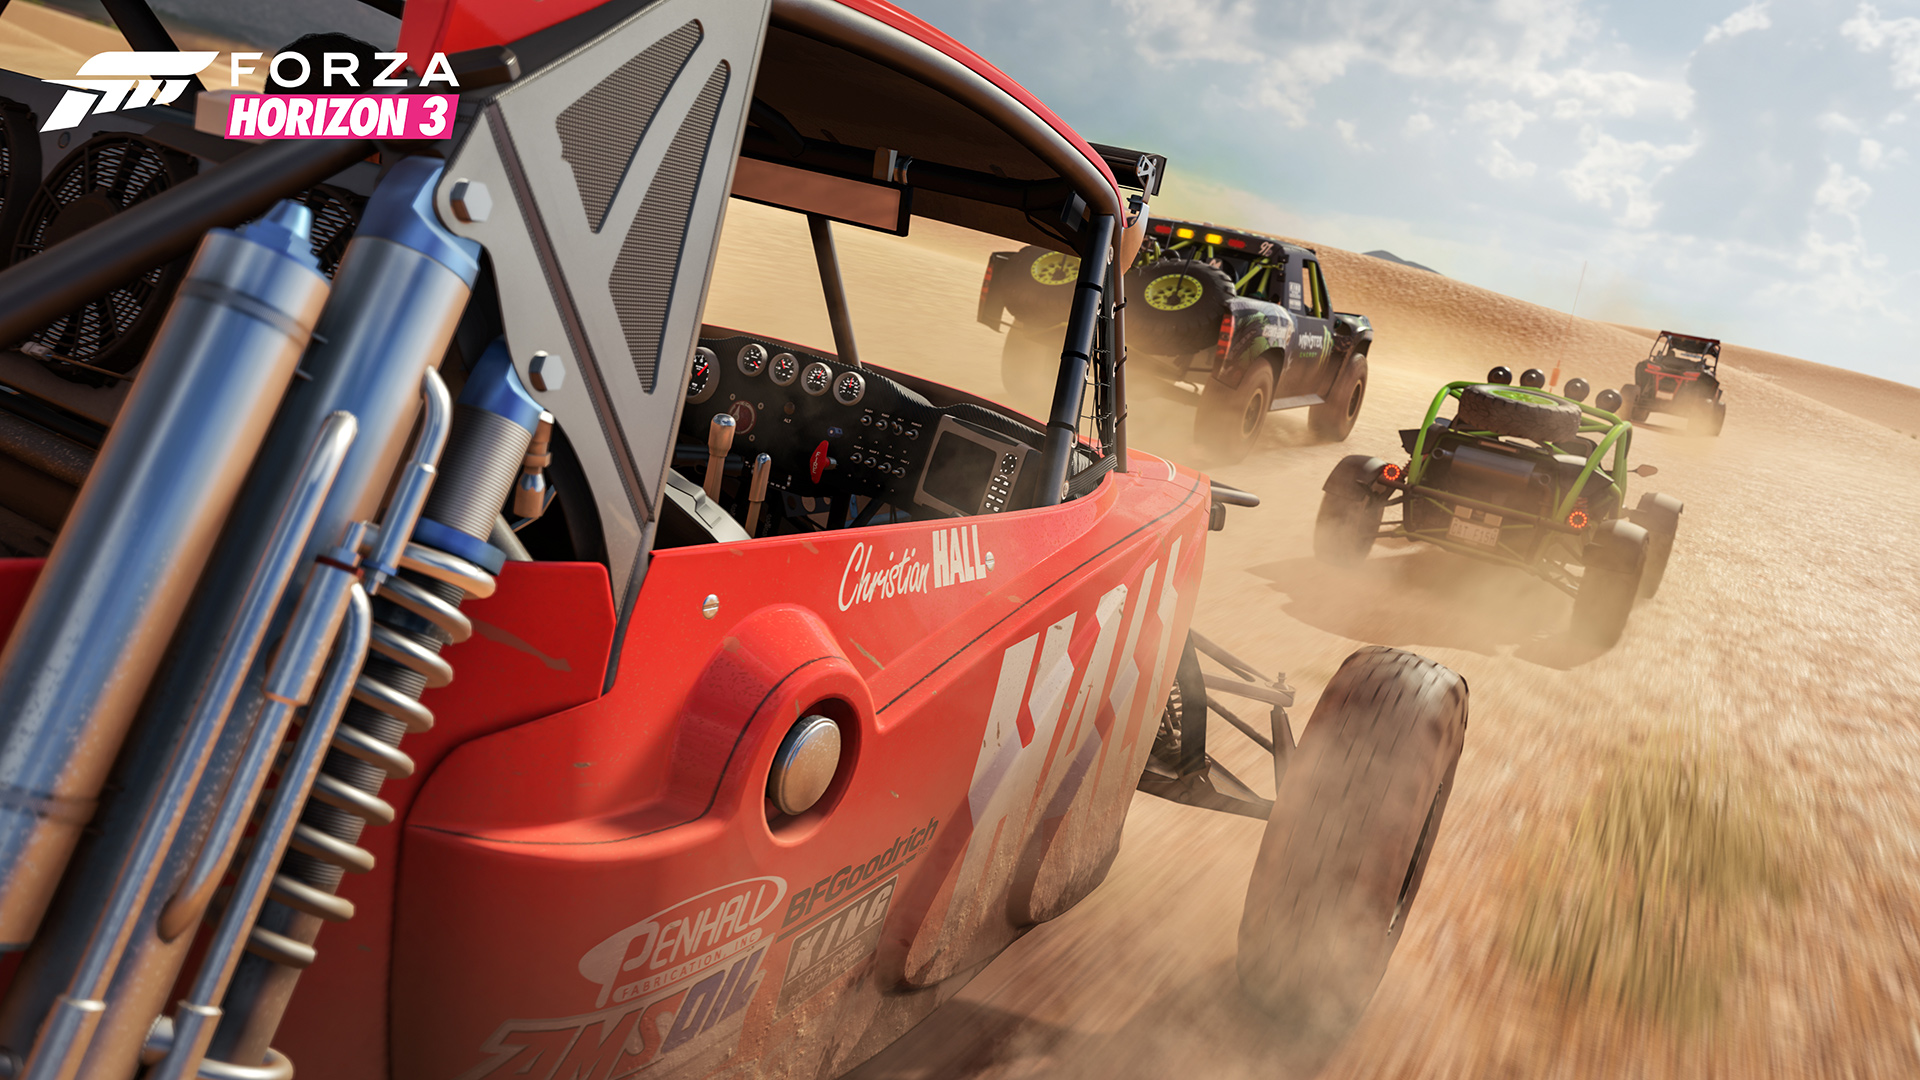 Forza Horizon 3 rolls out 4K update for Xbox One X screenshot